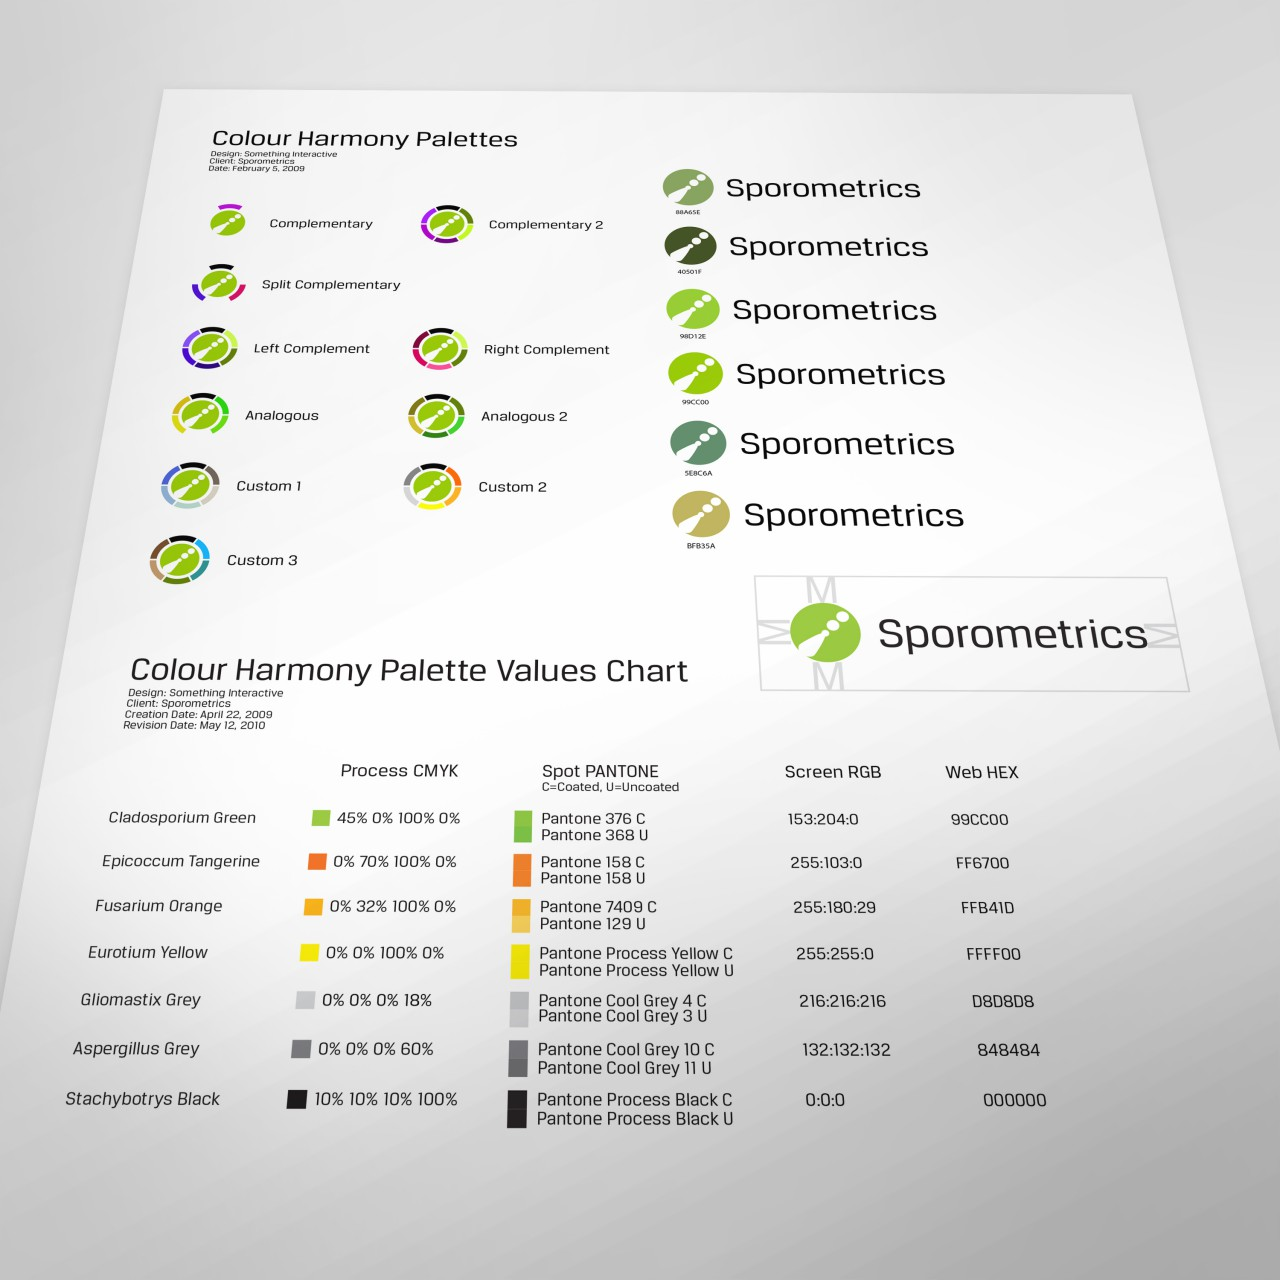 Image of Sporometrics logo color process chart